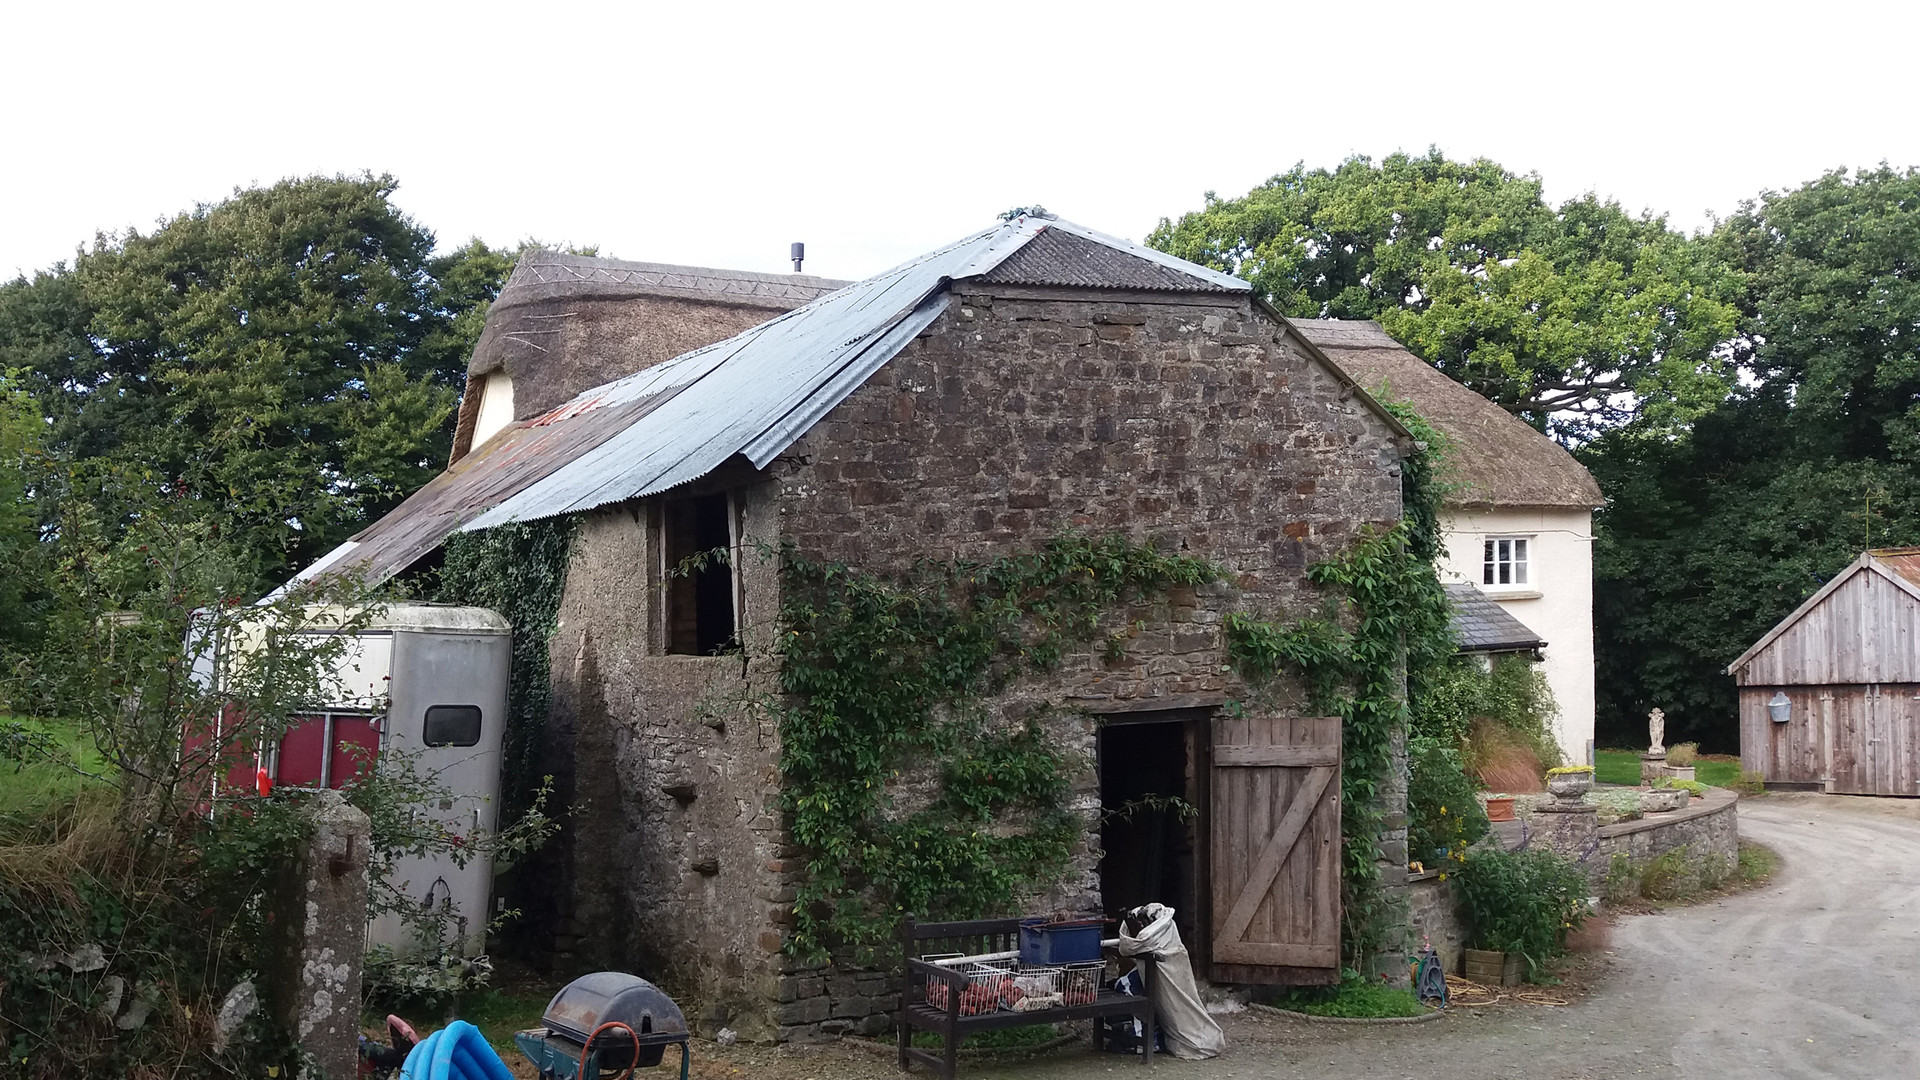 Barn conversion at Satterleigh, Devon